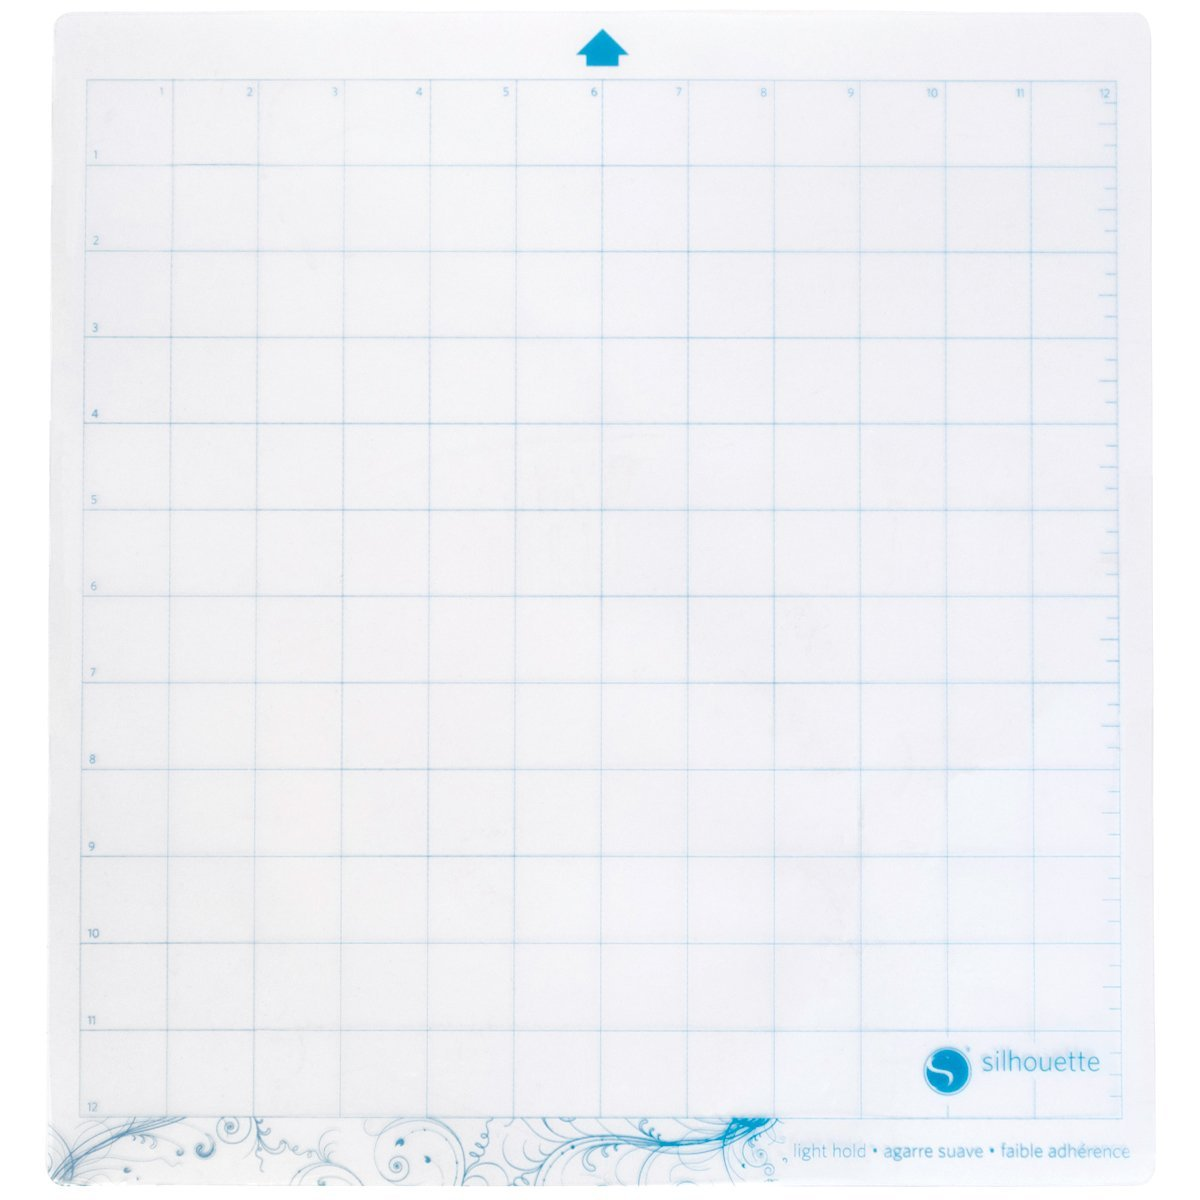 Silhouette CAMEO Light Hold Cutting Mat for Scrapbooking Silhouette America CUT-MAT-12LT-3T